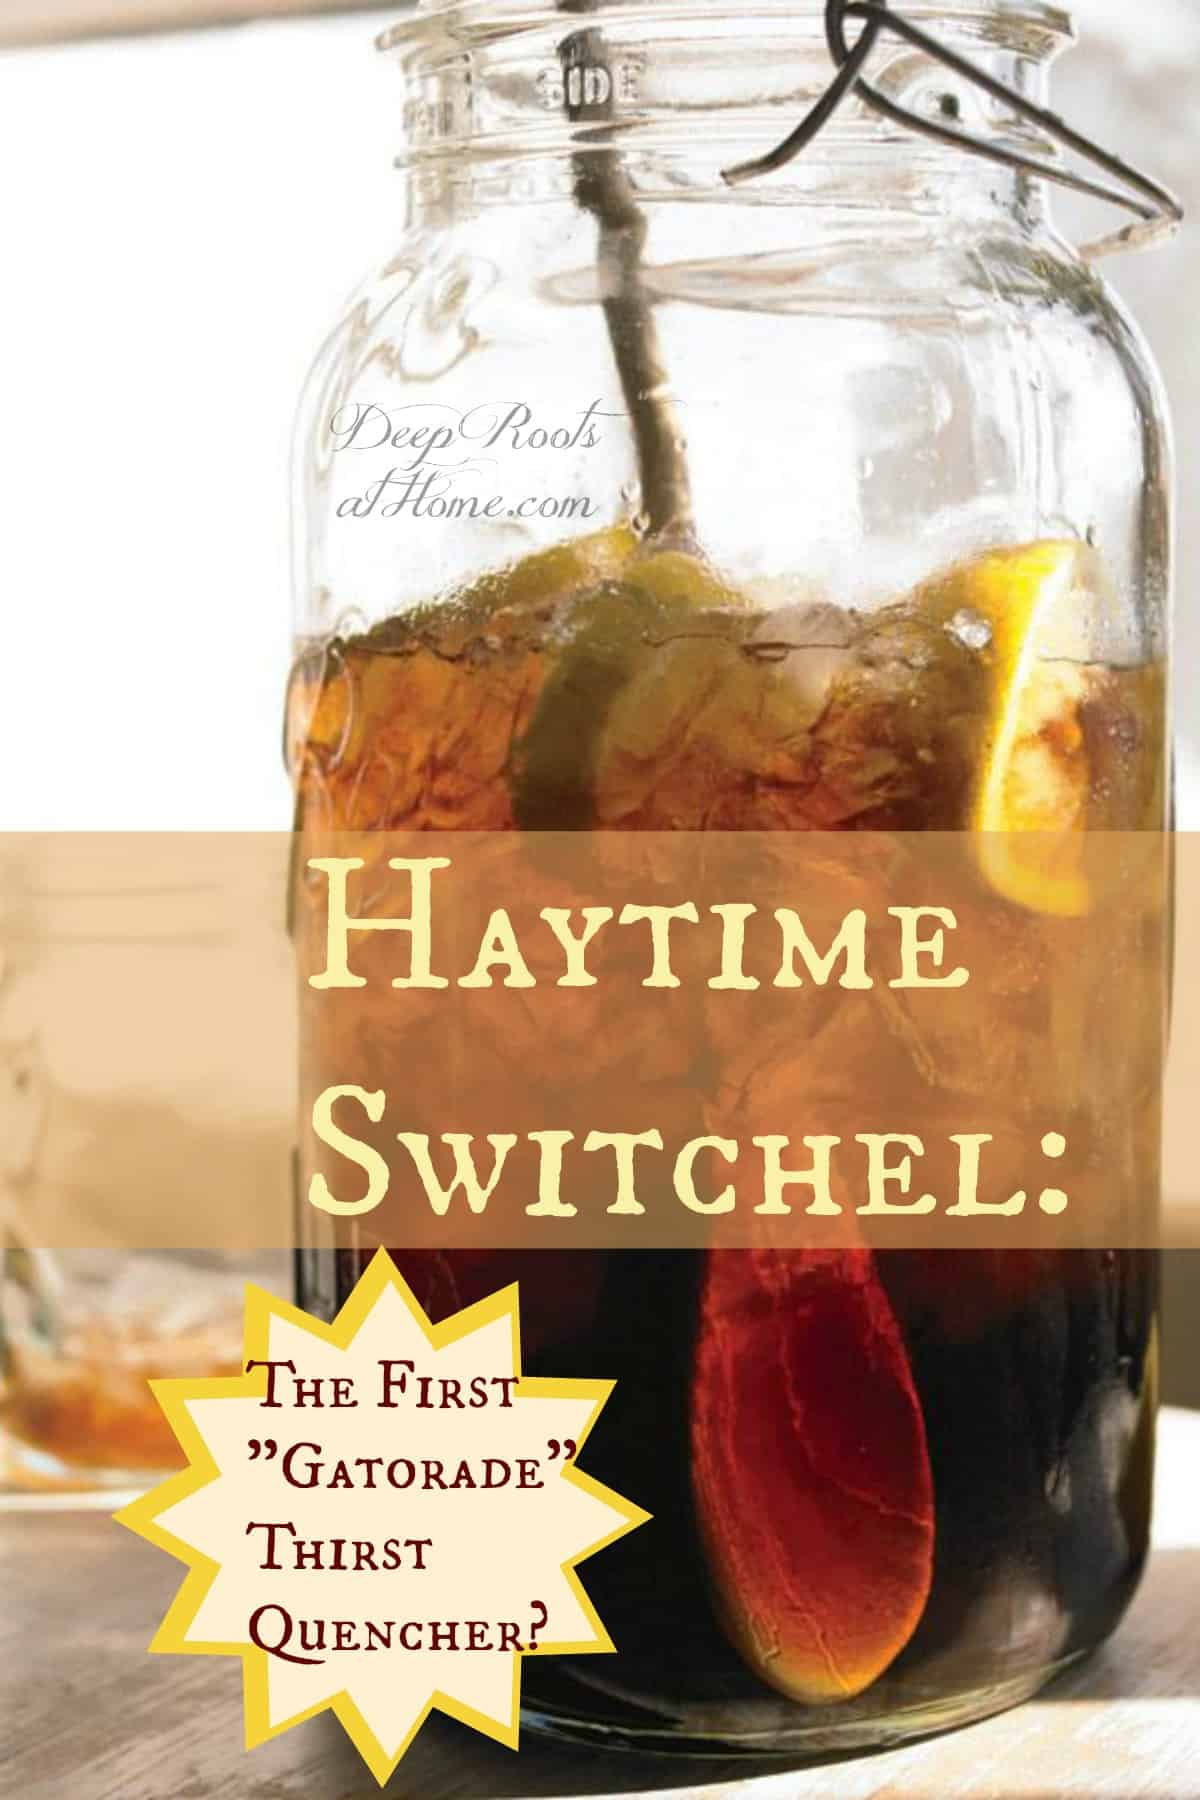 Haytime Switchel: The First 'Gatorade' Thirst Quencher? A gallon canning jar filled with iced switchel, a regional healthy drink made for hay time in the country.